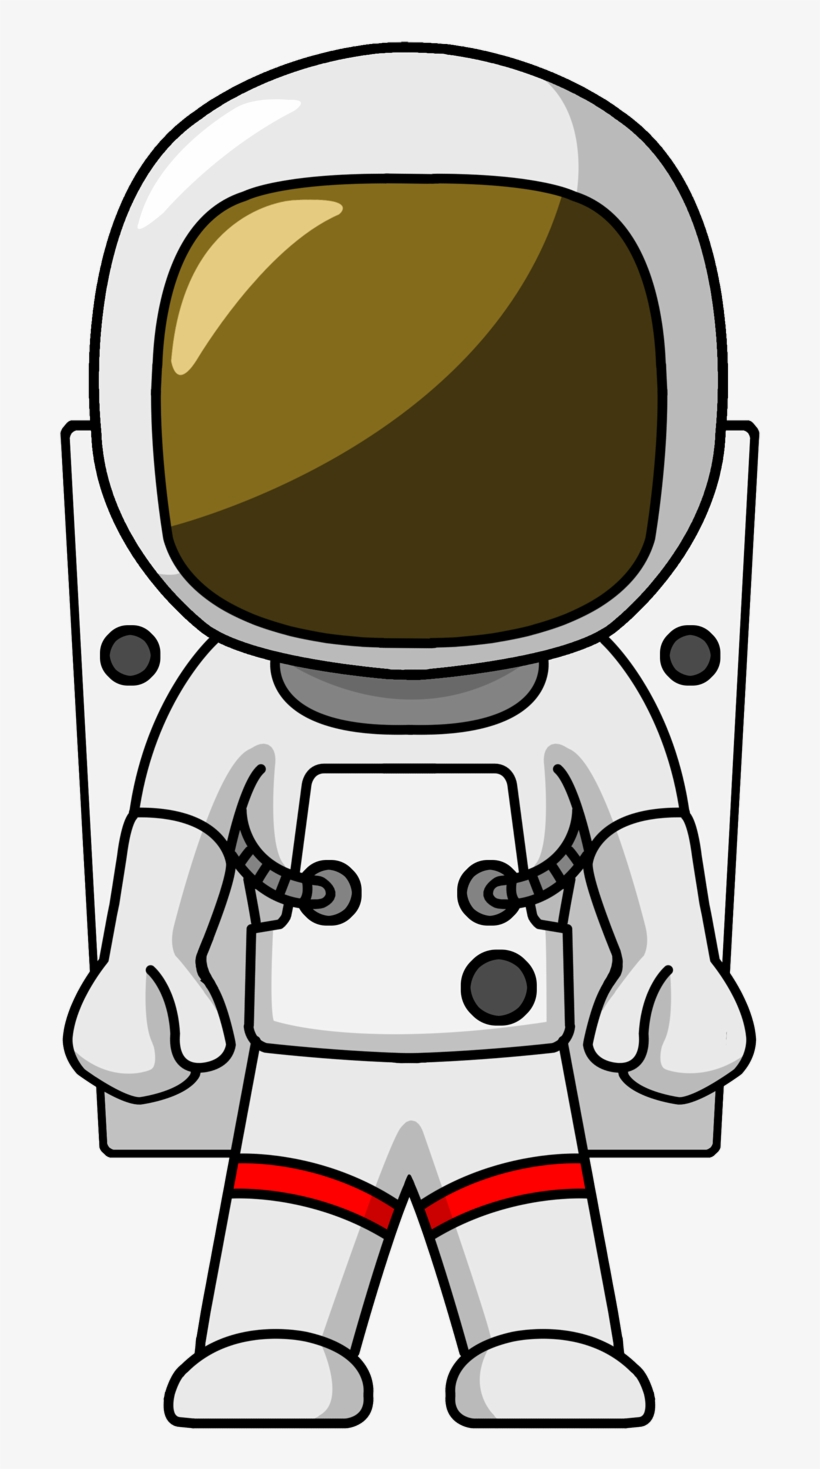 hight resolution of astronaut clip art images free for commercial use transparent background astronaut clipart